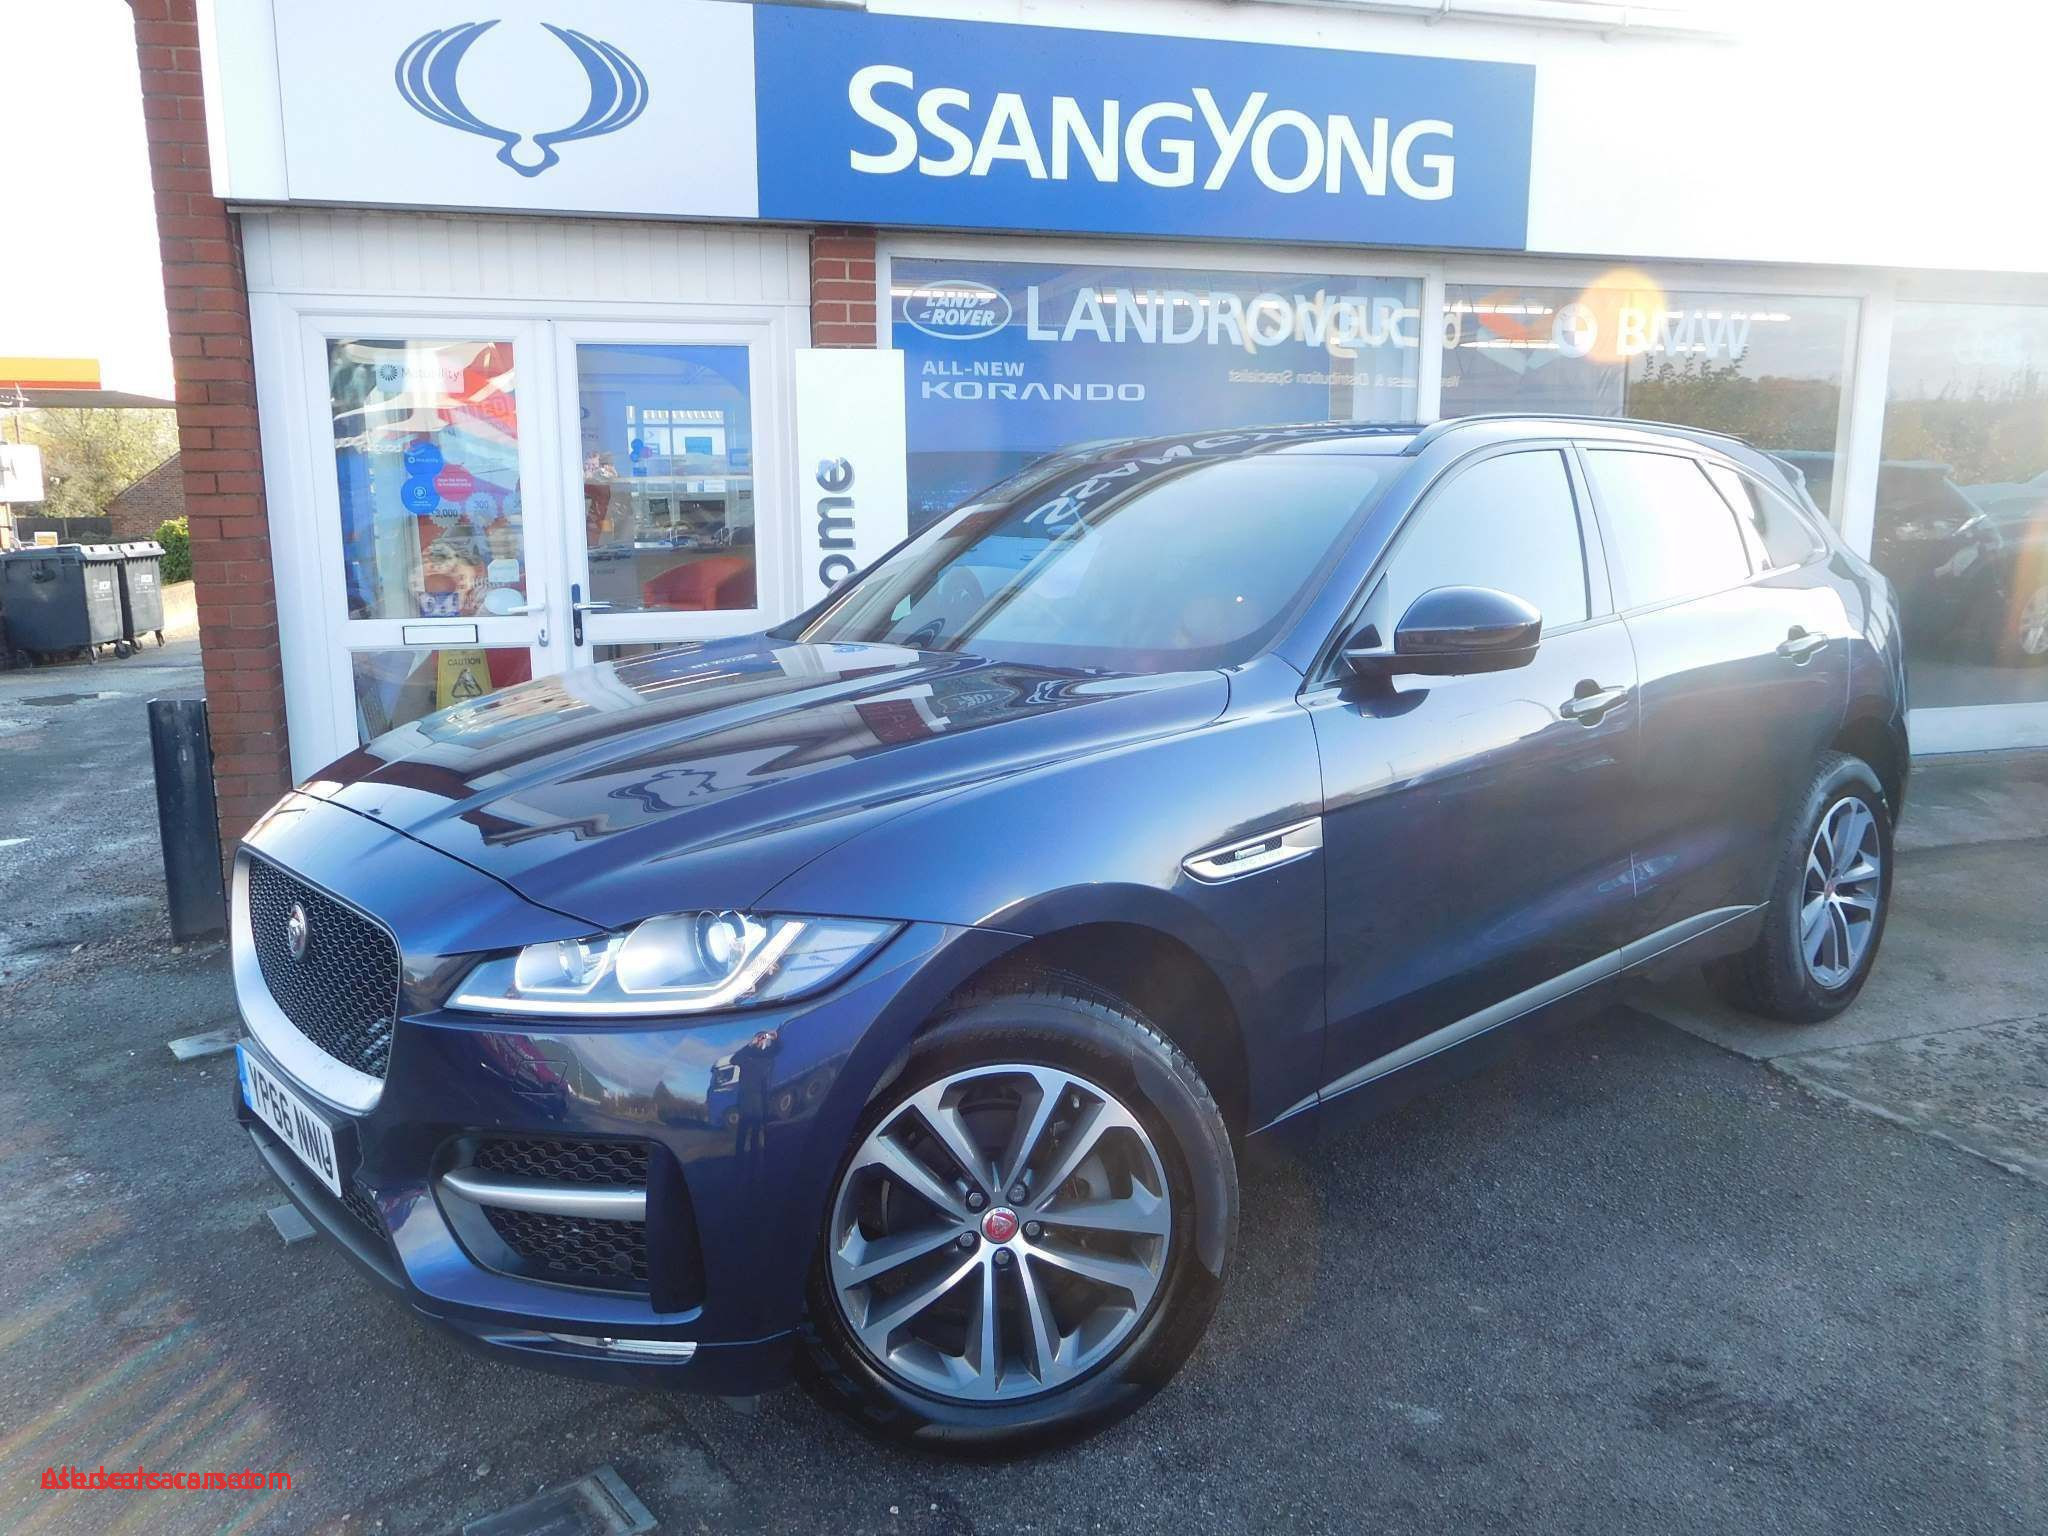 Used Cars for Sale 2016 Lovely Jaguar Suv for Sale Beautiful Used Jaguar F Pace Suv 2 0d R